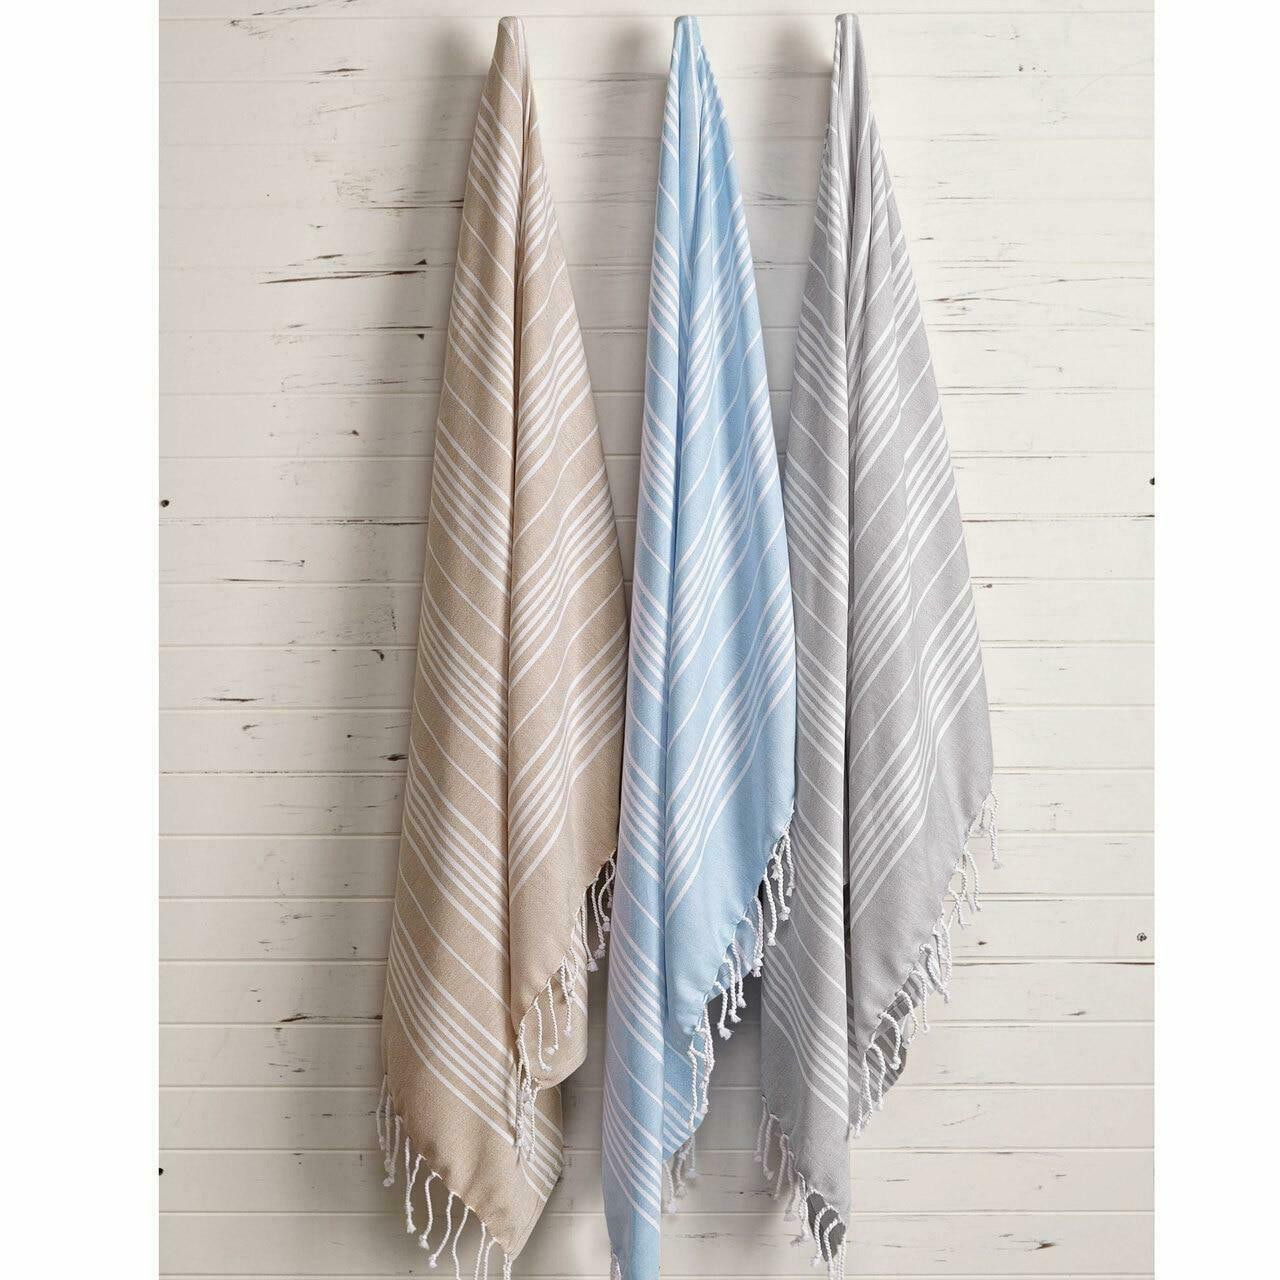 1888 Mills 1888 MILLS or WANDER BOHO BLANKETS or GREY or40X68 or 100percent RING SPUN COMBED COTTON or 1 DZ PER CASE